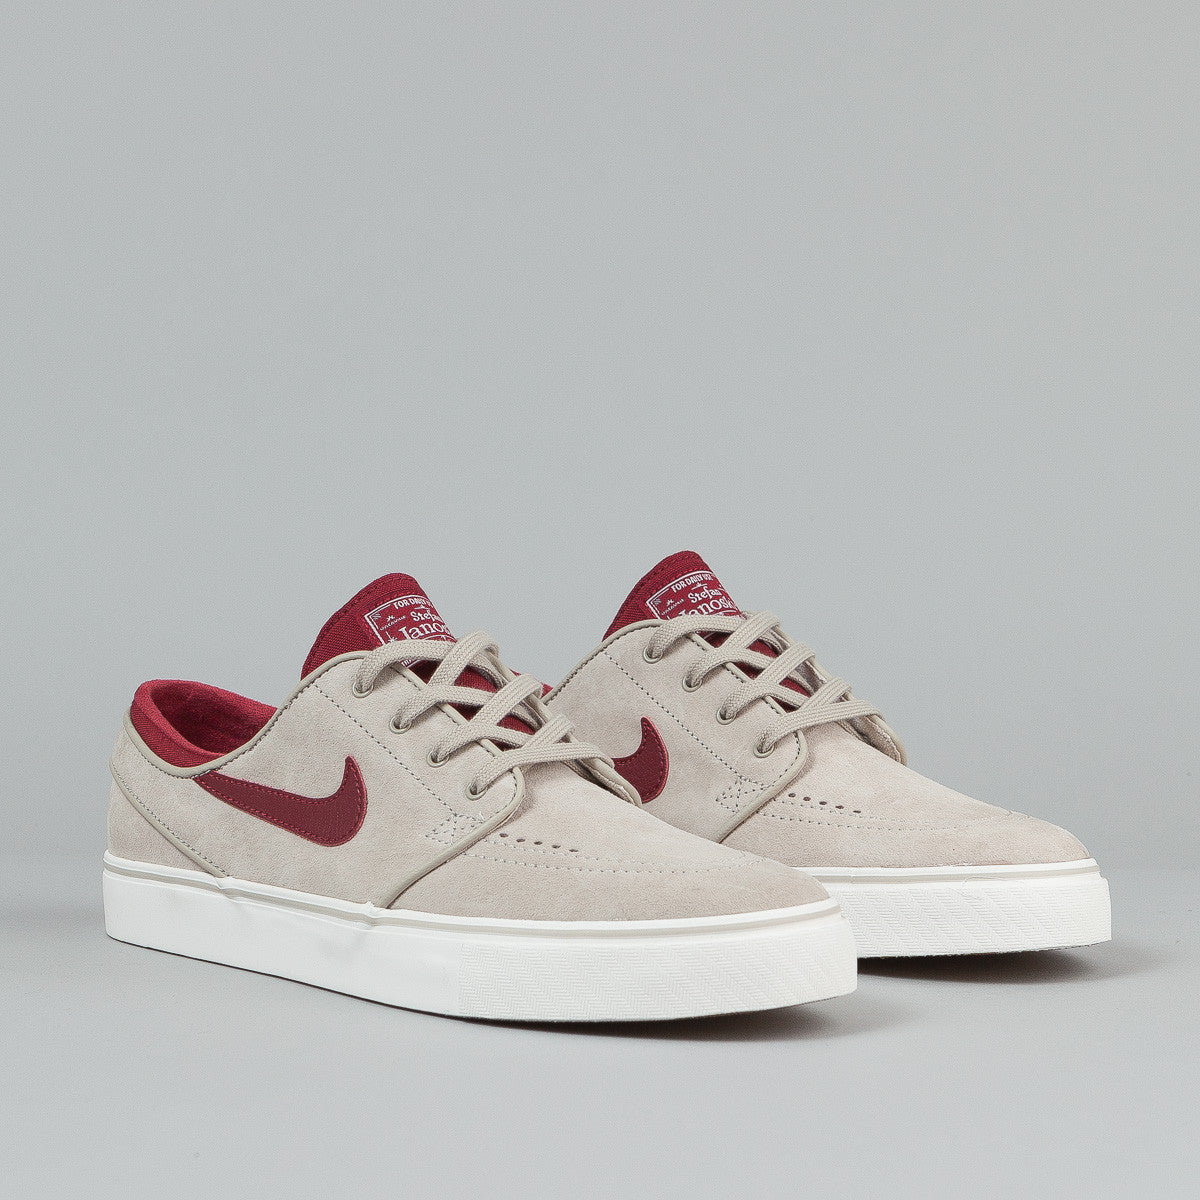 Nike SB Stefan Janoski SE Shoes - String / Team Red / Gum Light Brown / Ivory